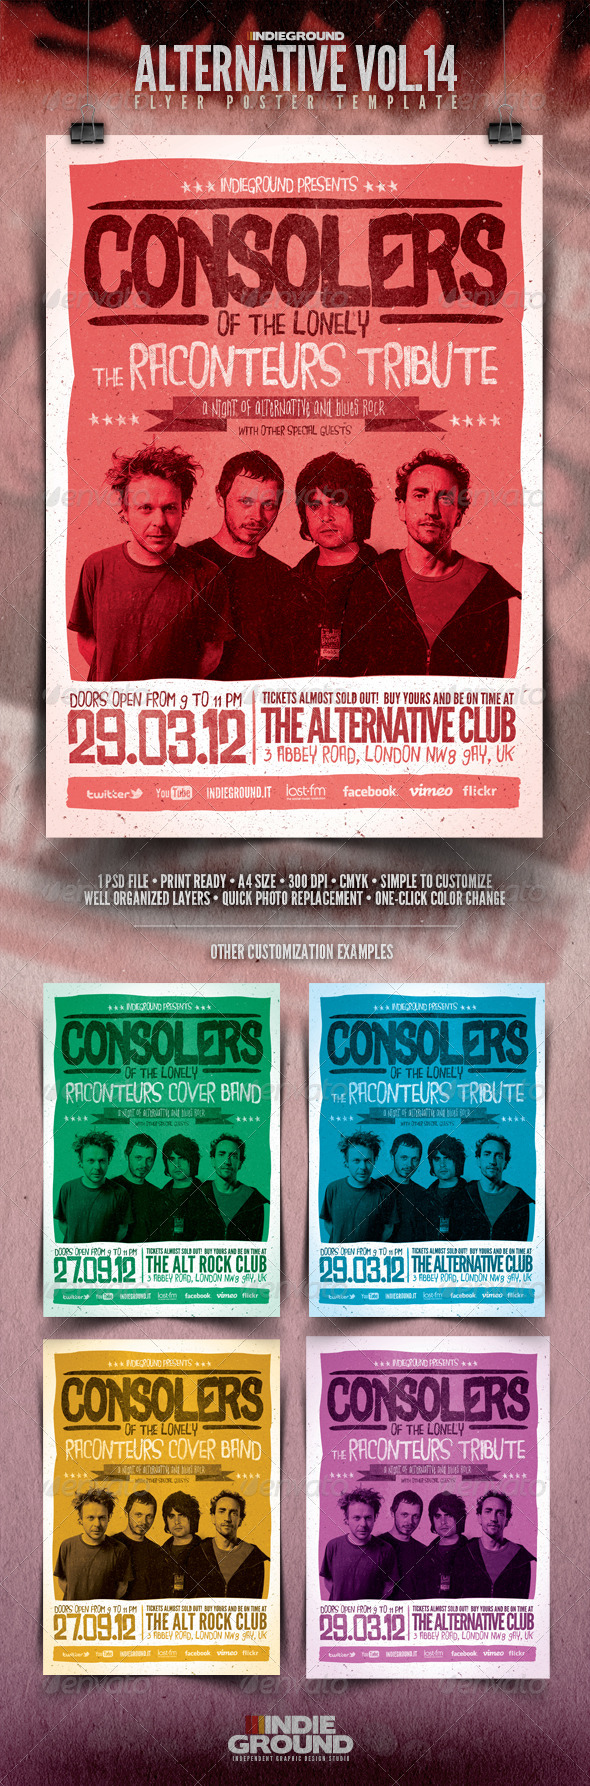 Alternative Flyer/Poster Vol. 14 - Concerts Events